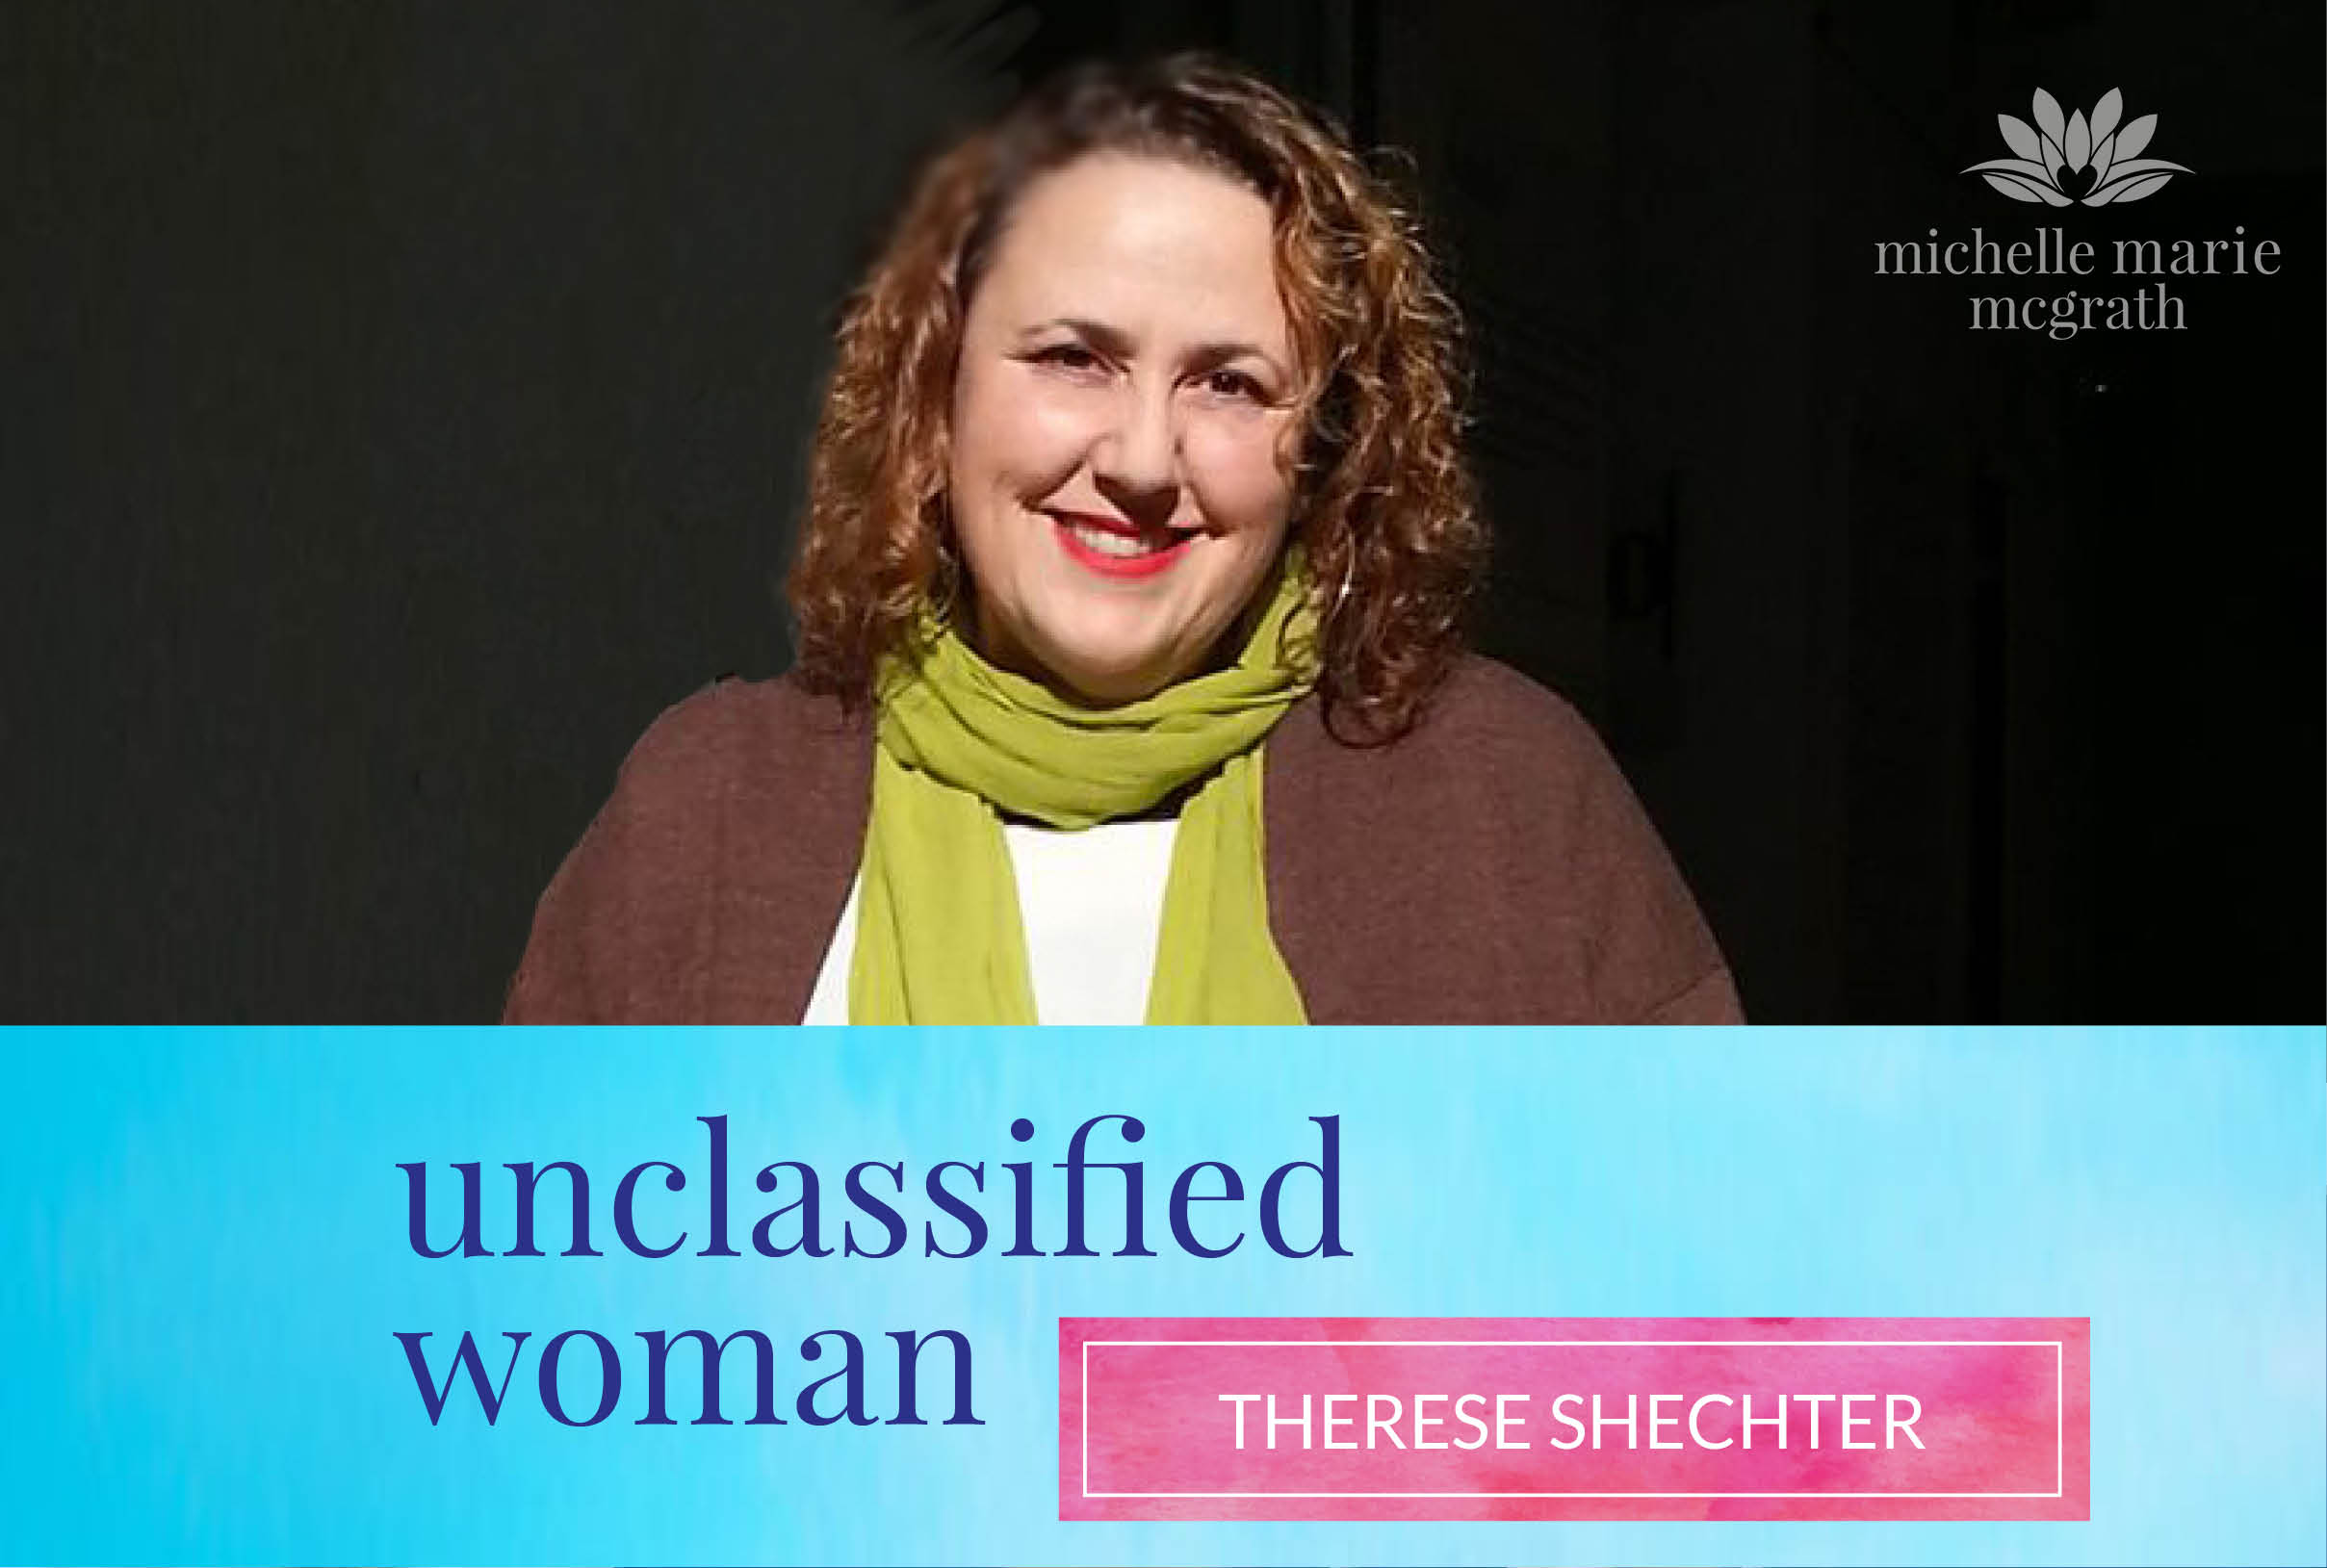 62: My So-called Selfish Life with Therese Shechter